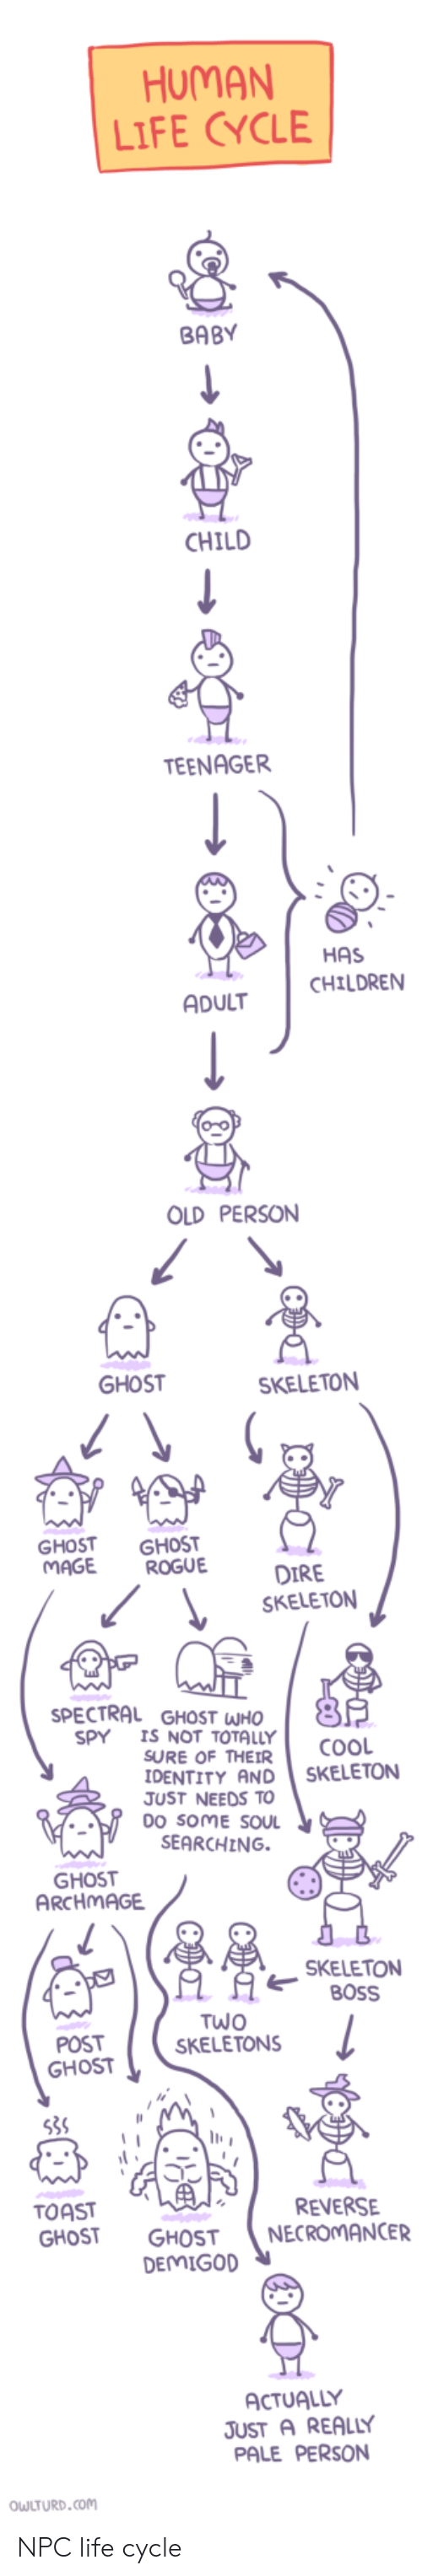 Soul Searching: HUMAN  LIFE CYCLE  BABY  CHILD  TEENAGER  HAS  CHILDREN  ADULT  OLD PERSON  SKELETON  GHOST GHOST  MAGE ROGUE  SKELETON  SPECTRAL GHOST WHO  5  SPY I NOT TOTALLY cooL  SURE OF THEIR  IDENTITY AND SKELETON  JUST NEEDS TO  DO SOME SOUL  SEARCHING.  SKELETON  80SS  POST  SKELETONS  OST  TOAST  GHOST GHOST NECROMANCER  REVERSE  DEMIGOD  ACTUALLY  JUST A REALLY  PALE PERSON  OWLTURD.com NPC life cycle